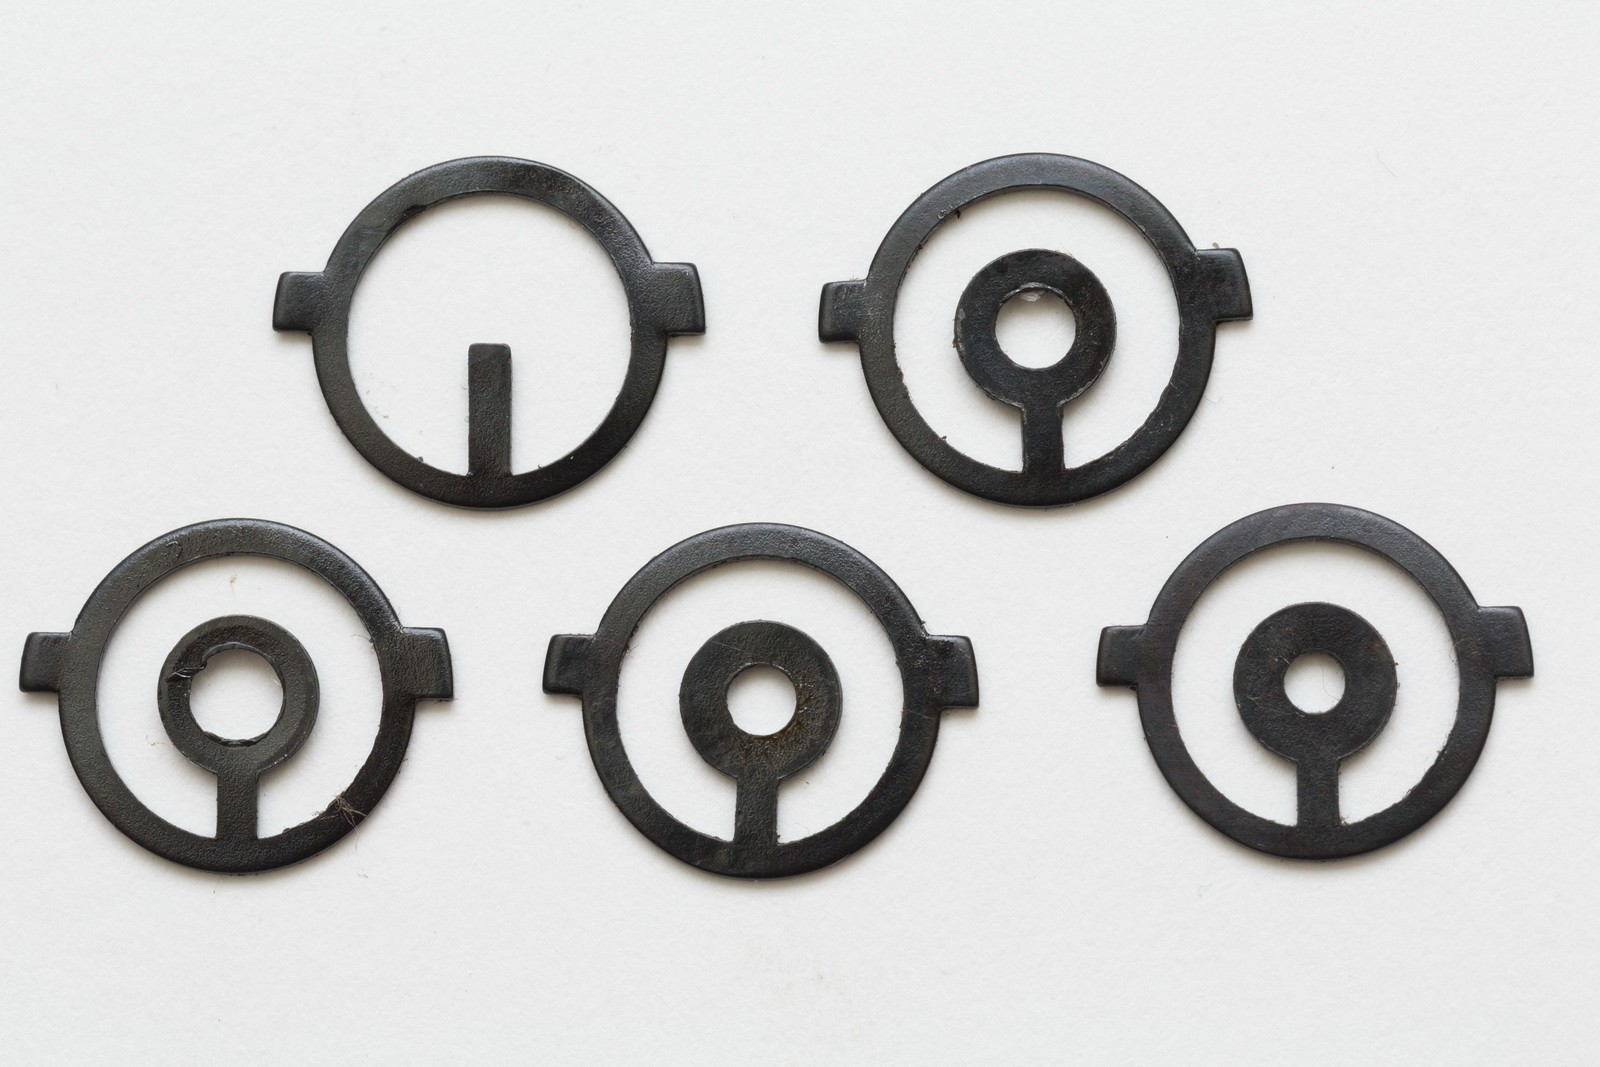 5 Steel Inserts for M1 Sights